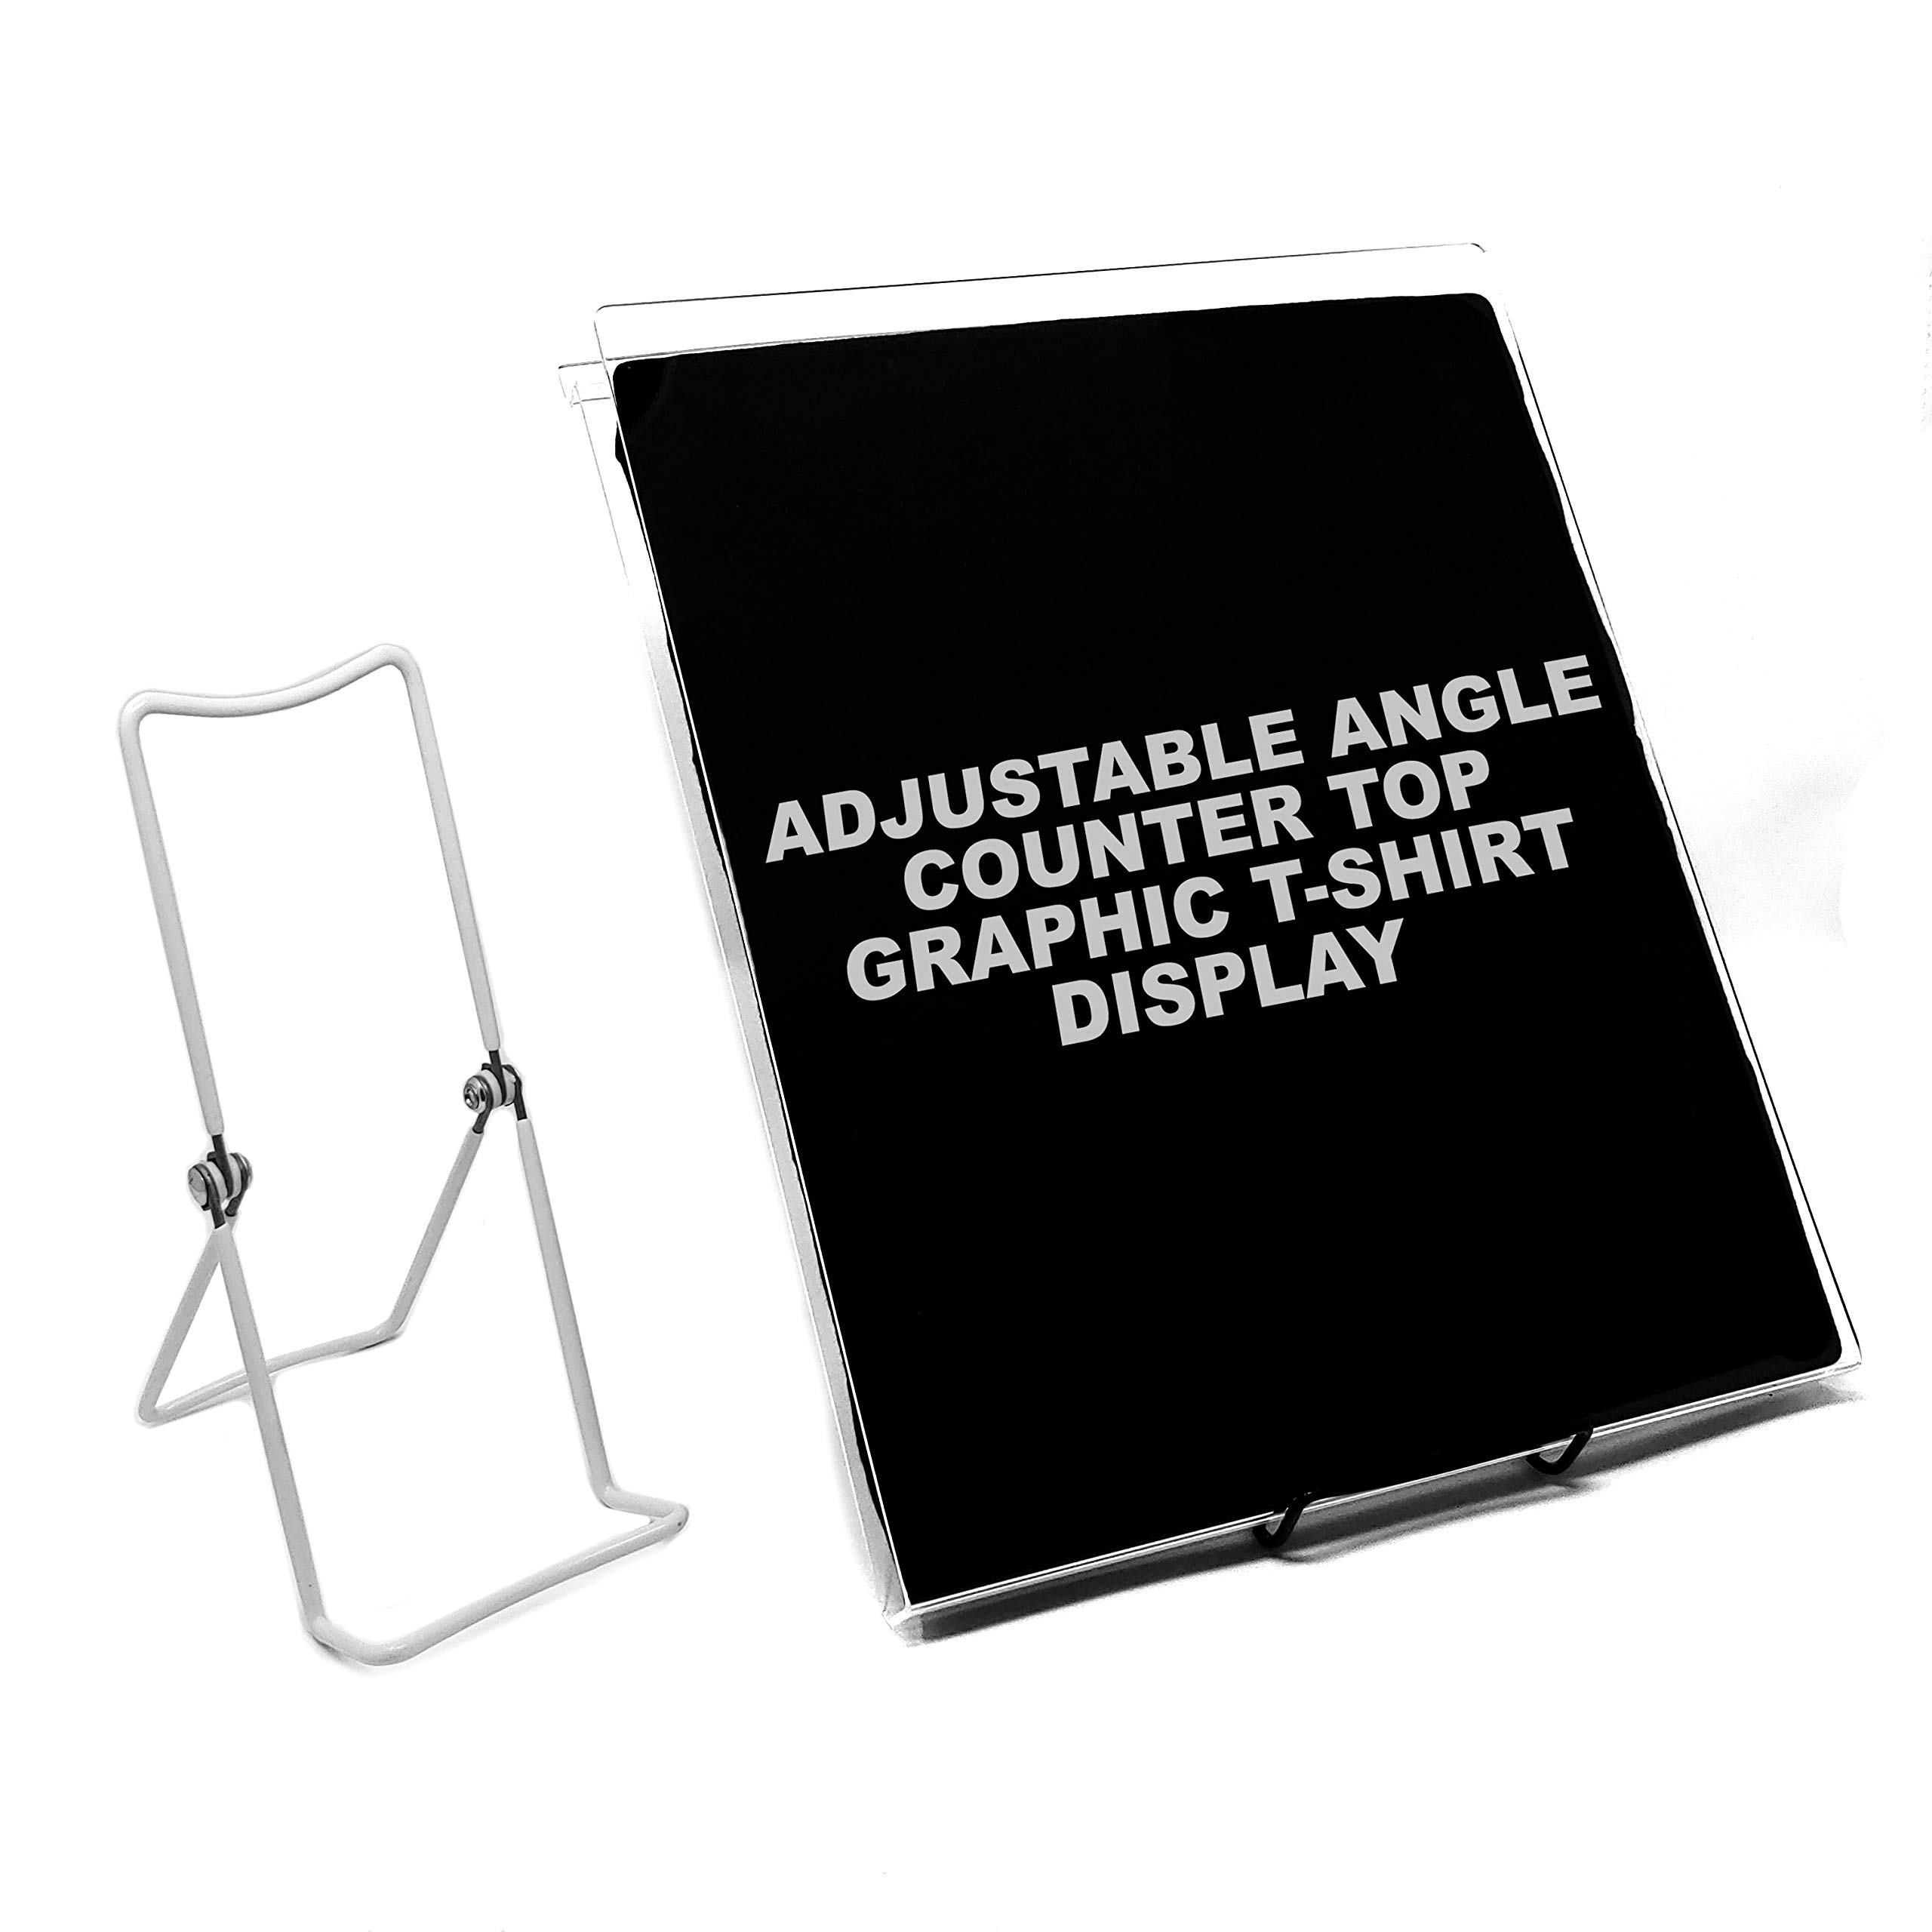 Countertop T-Shirt Display, Acrylic Adjustable Angle Graphic Tee Holder, 11.5'' X 14.5, Black, 5 Pack